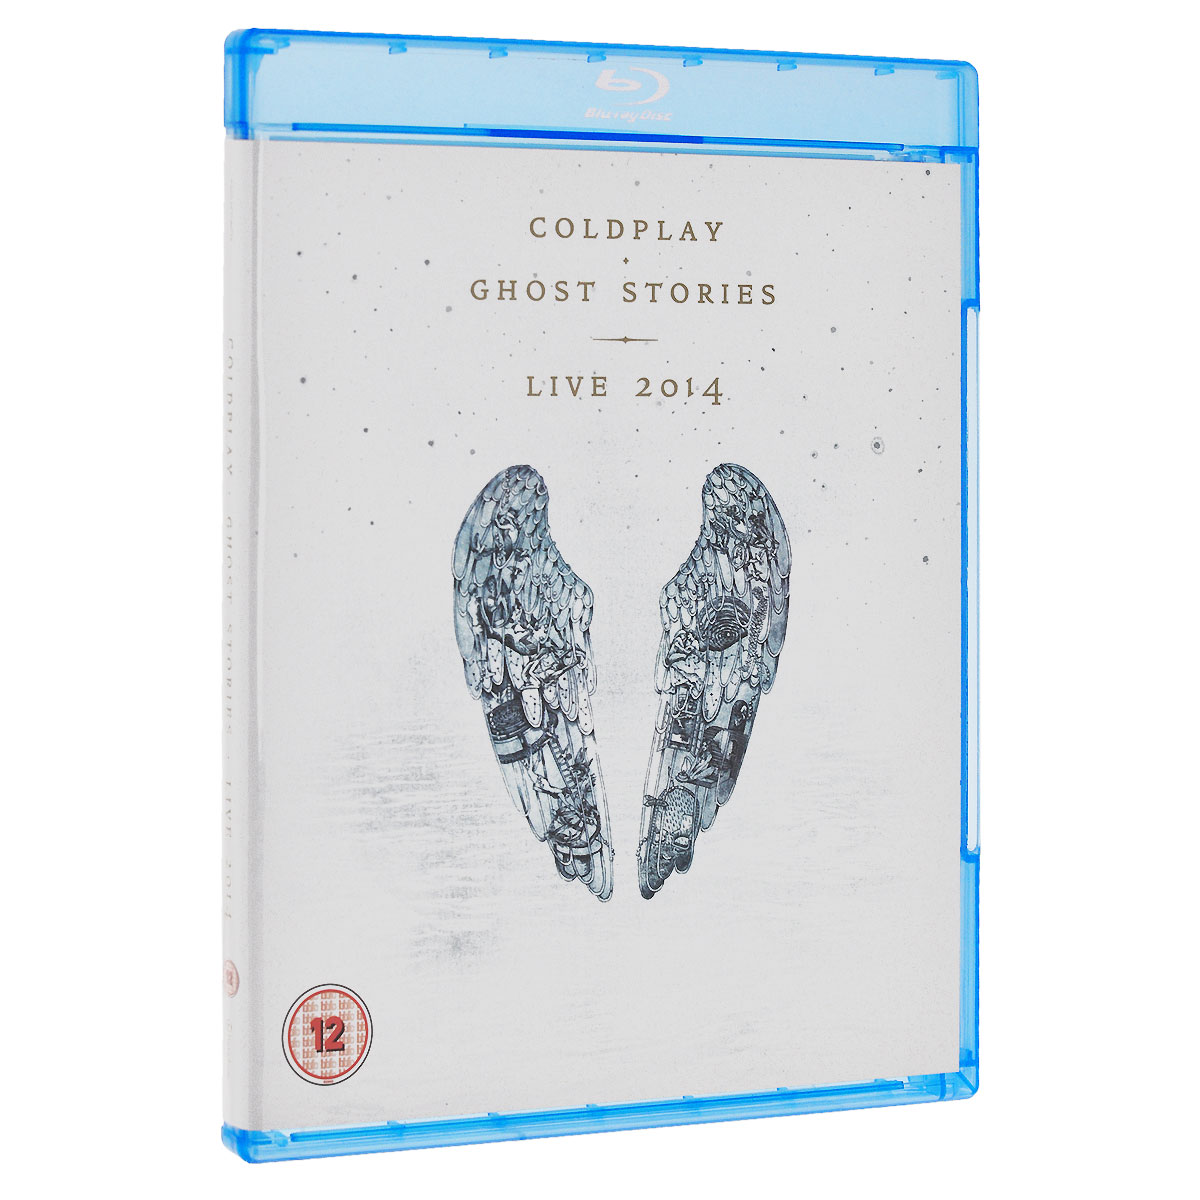 Coldplay. Ghost Stories. Live 2014 (Blu-ray + CD) il divo live in london blu ray